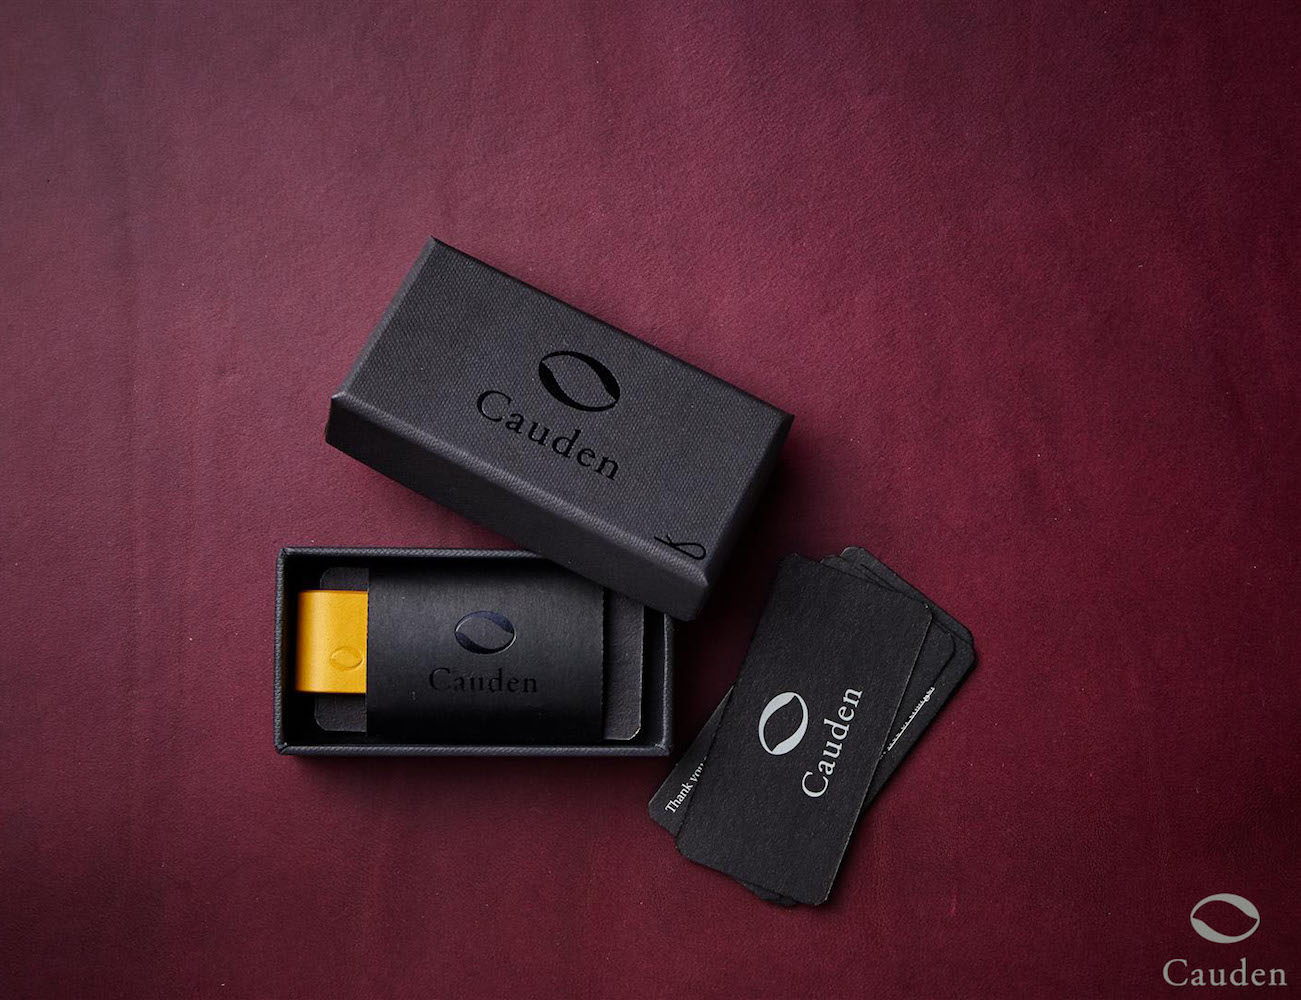 The Cauden – Unique & Minimal Carbon Fiber Leather Moneyclip